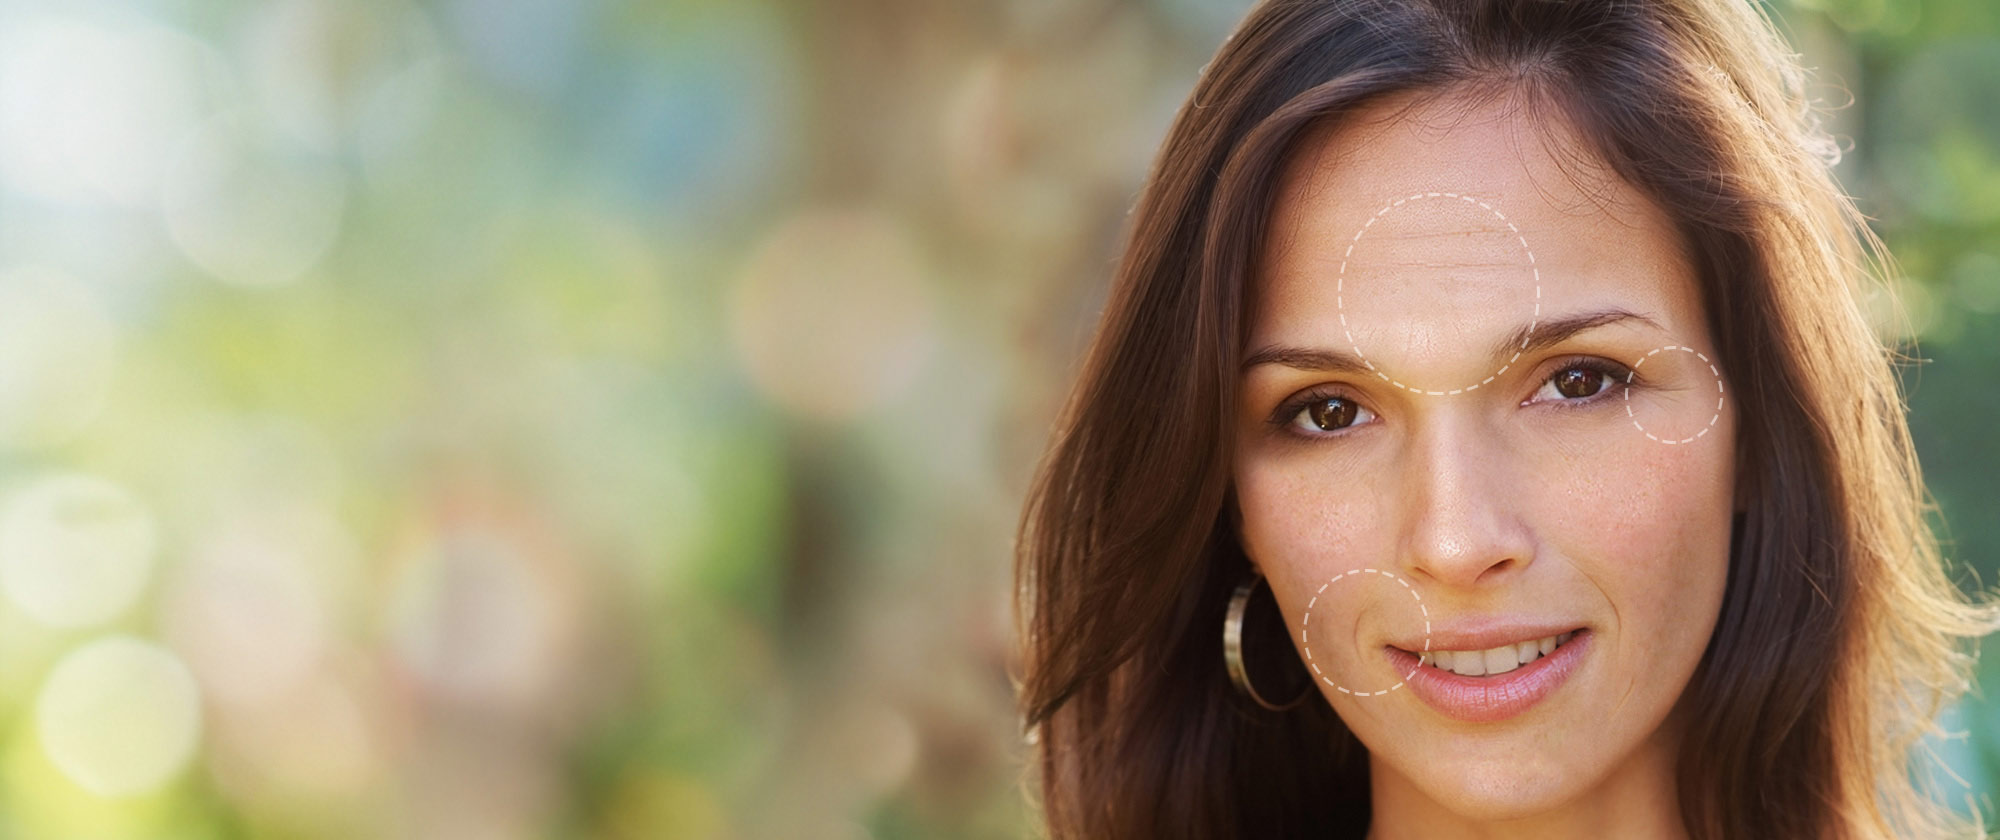 Woman's face with fine lines, wrinkles on forehead & uneven skin tone.